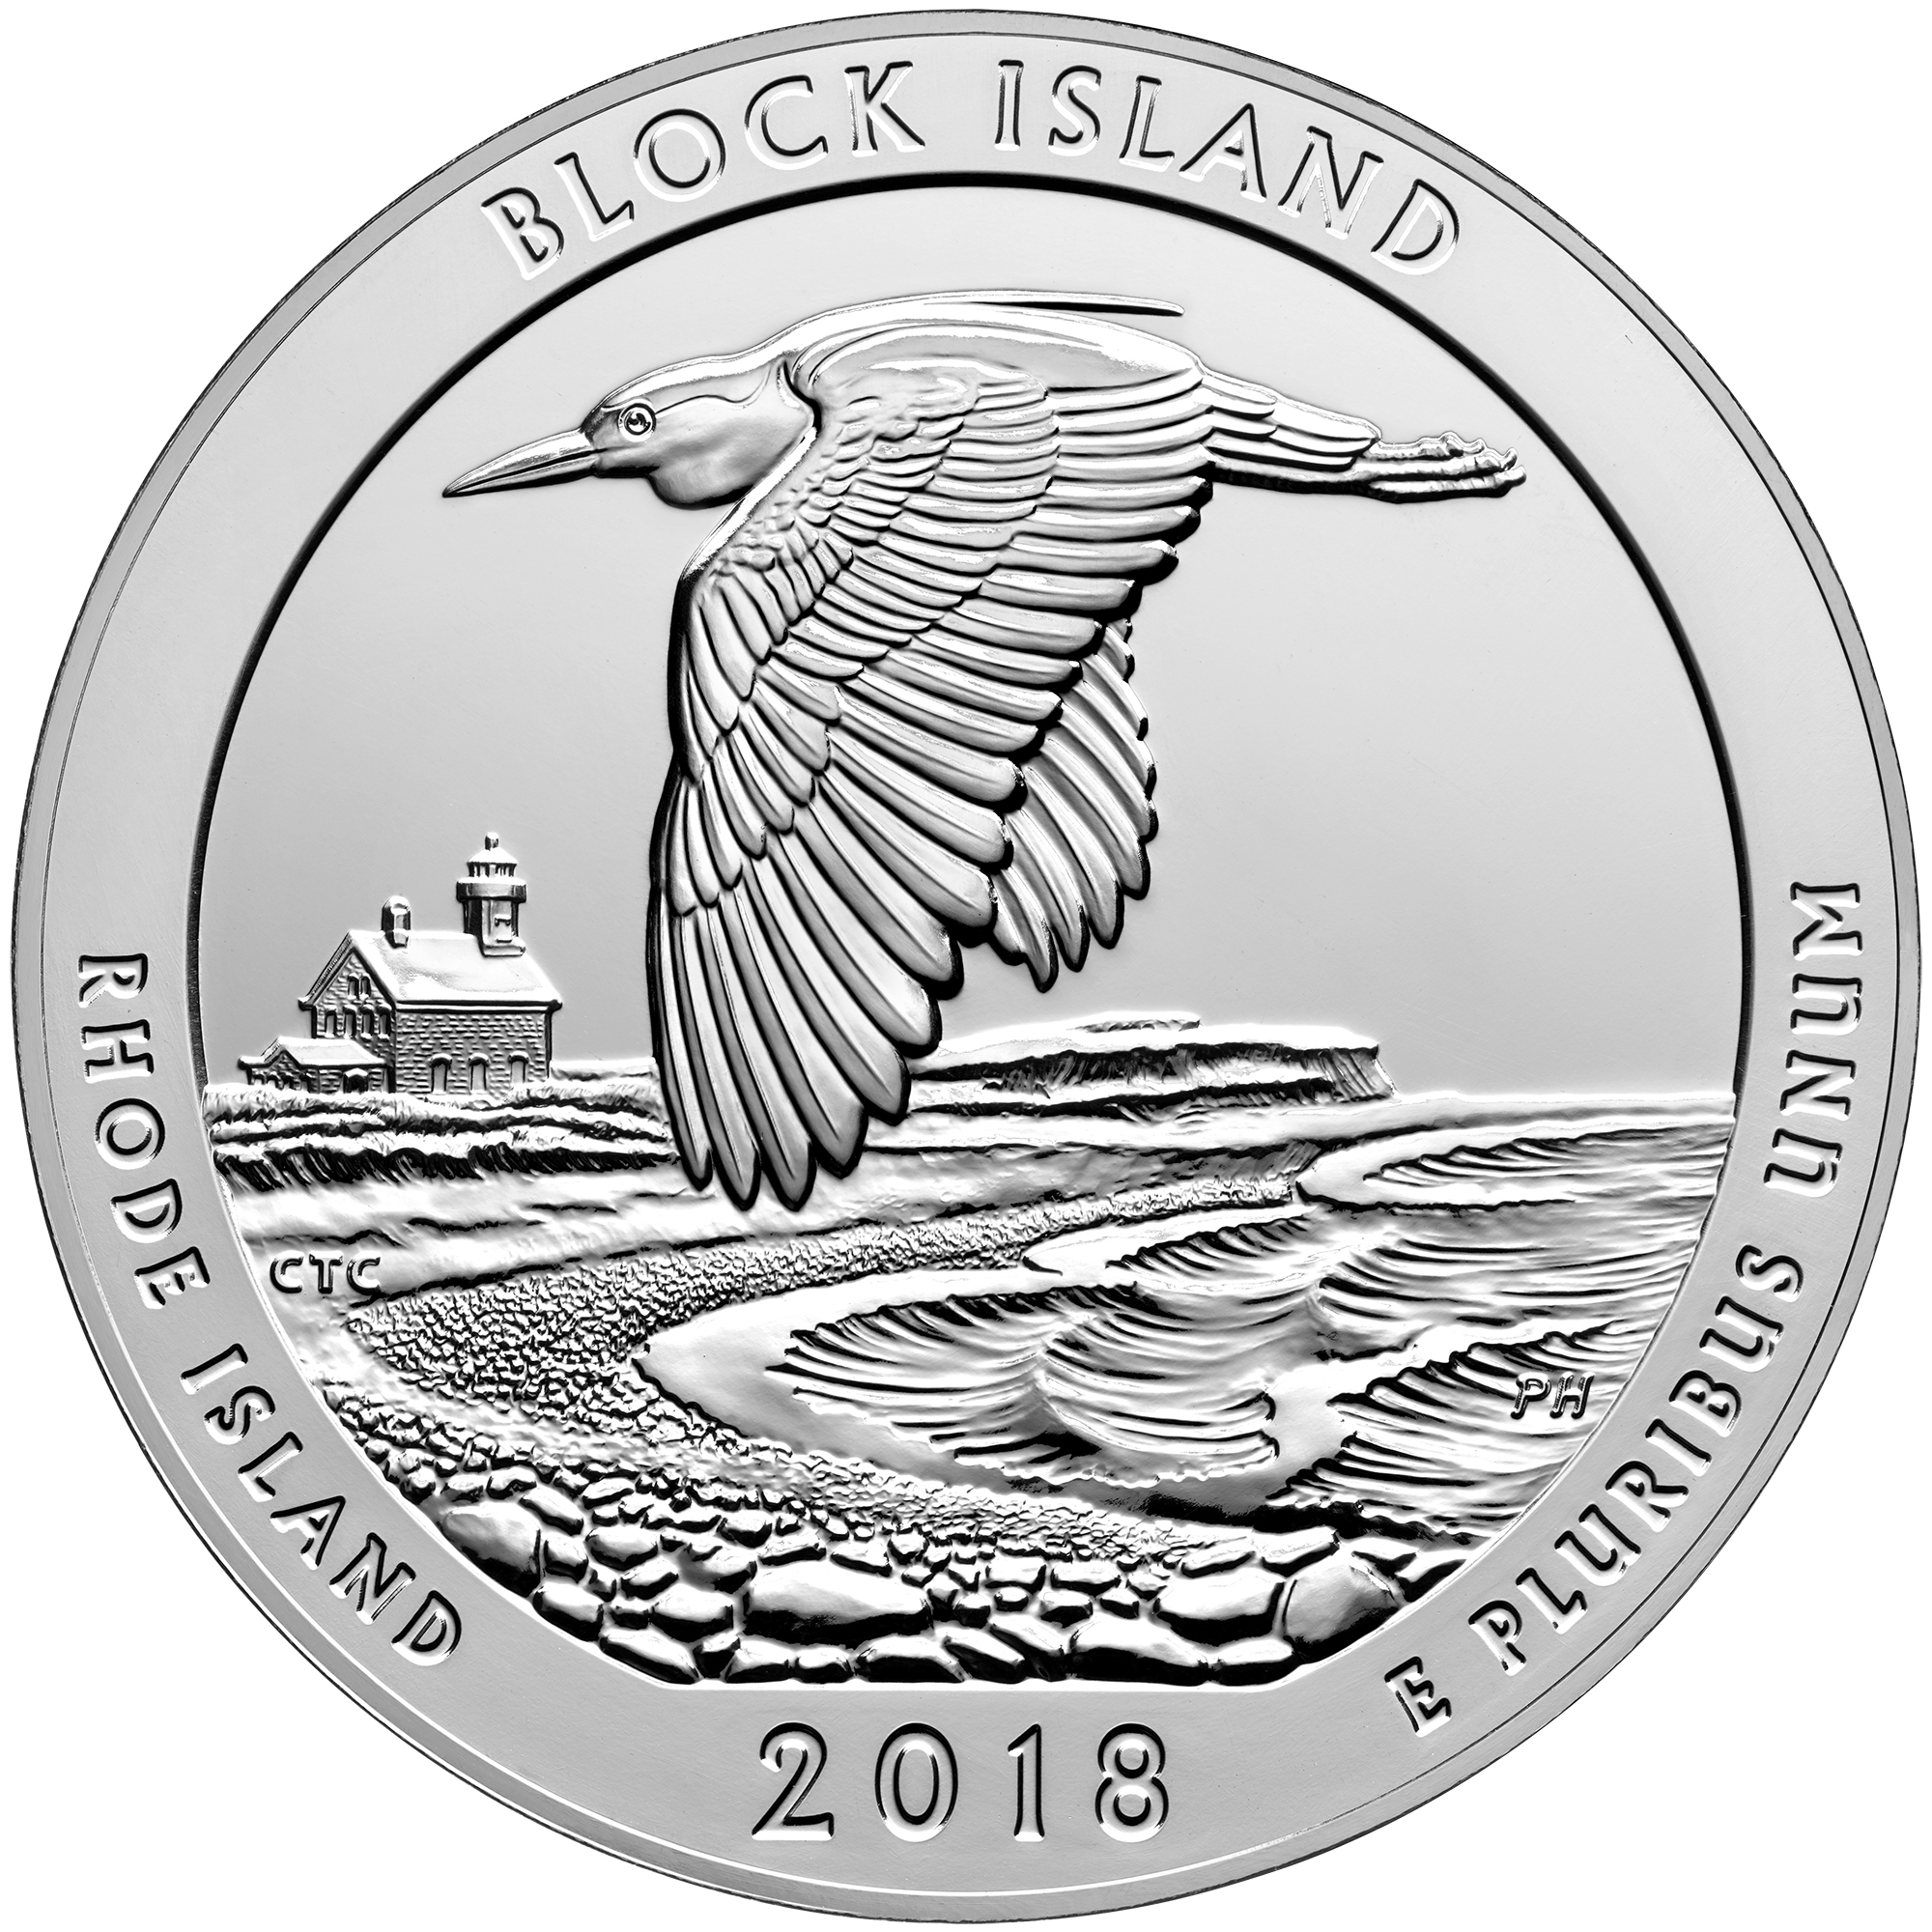 main image for America The Beautiful 5 Oz Silver Coin Prices Now Available On Greysheet Website